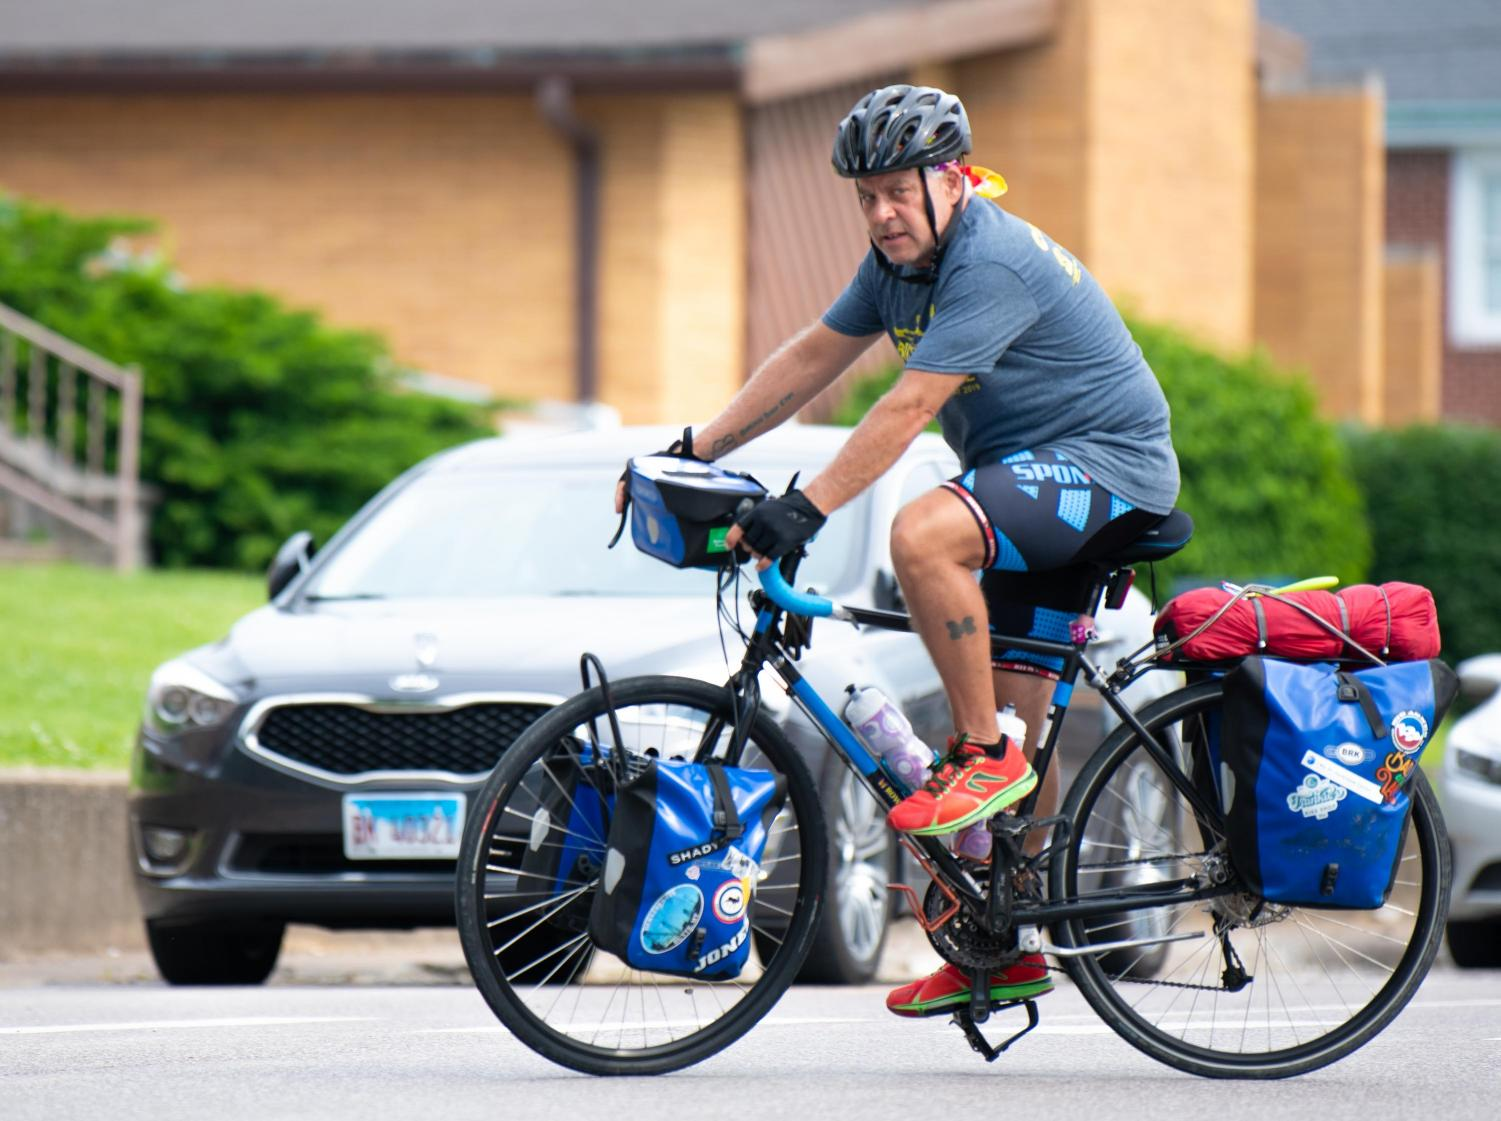 Rob Freed pulls out of Home2 Suites on Saturday, May 25, 2019 on Elm Street in Carbondale, Illinois.